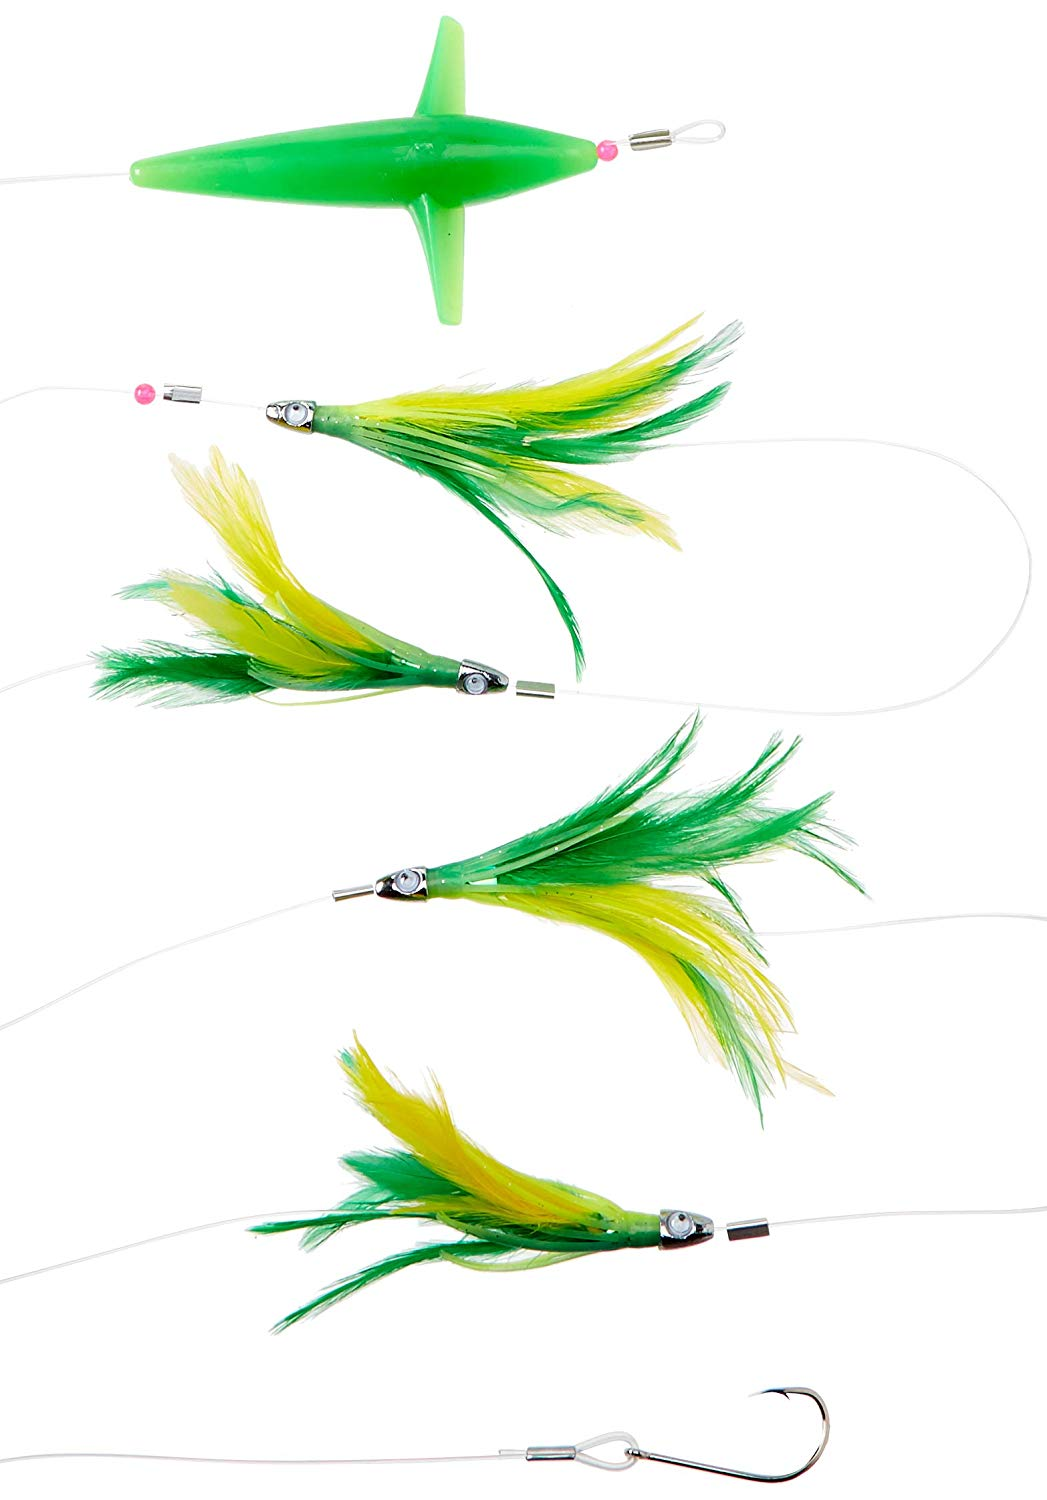 1047x1500 Eat My Tackle Offshore Fishing Lure Green Daisy Chain